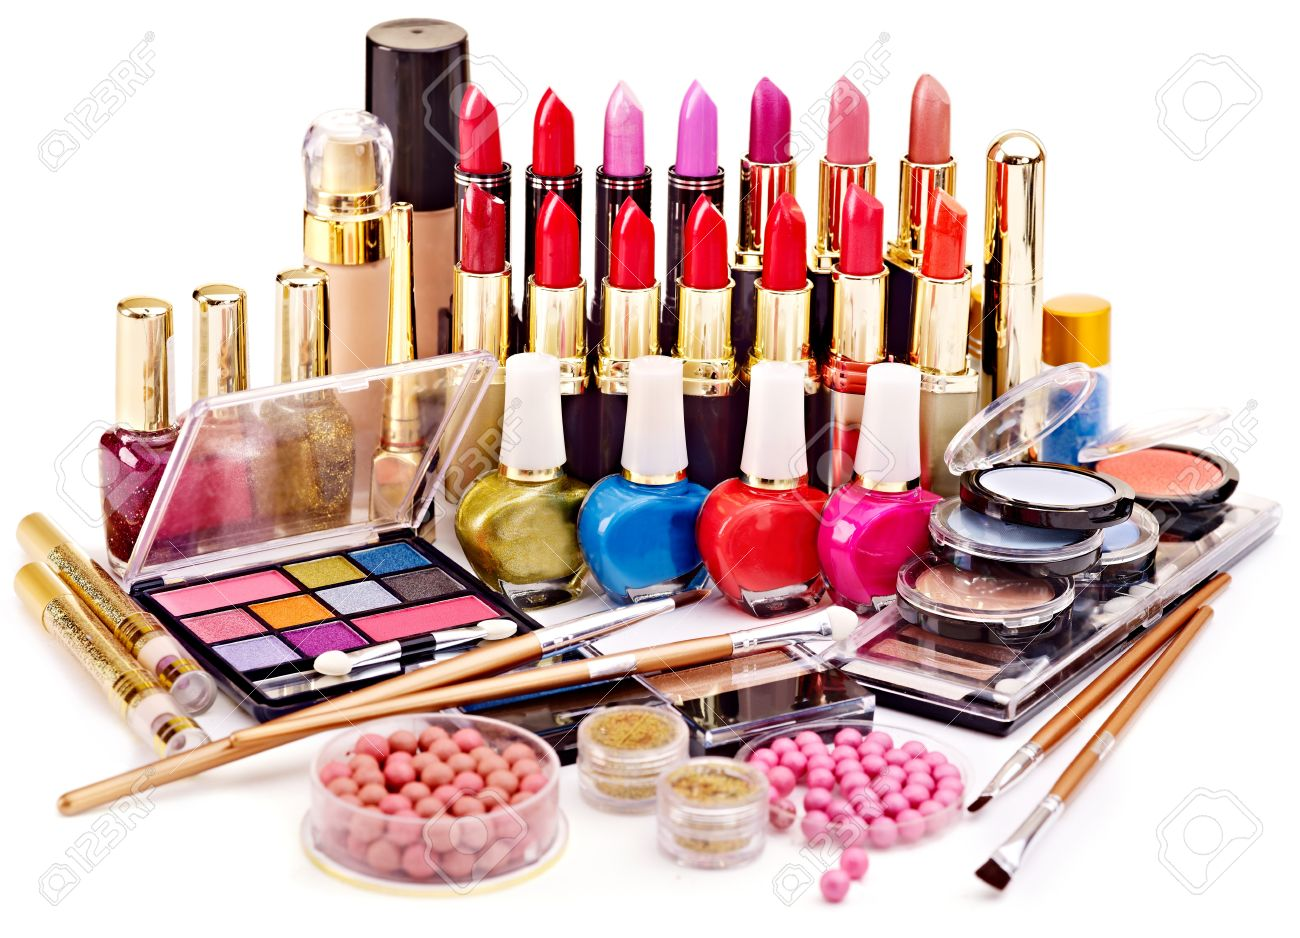 Make Ups, Cosmetics, Skin Care, Hair Care, Nail Care, Sun and Tan Care, Face Care, Lipsticks